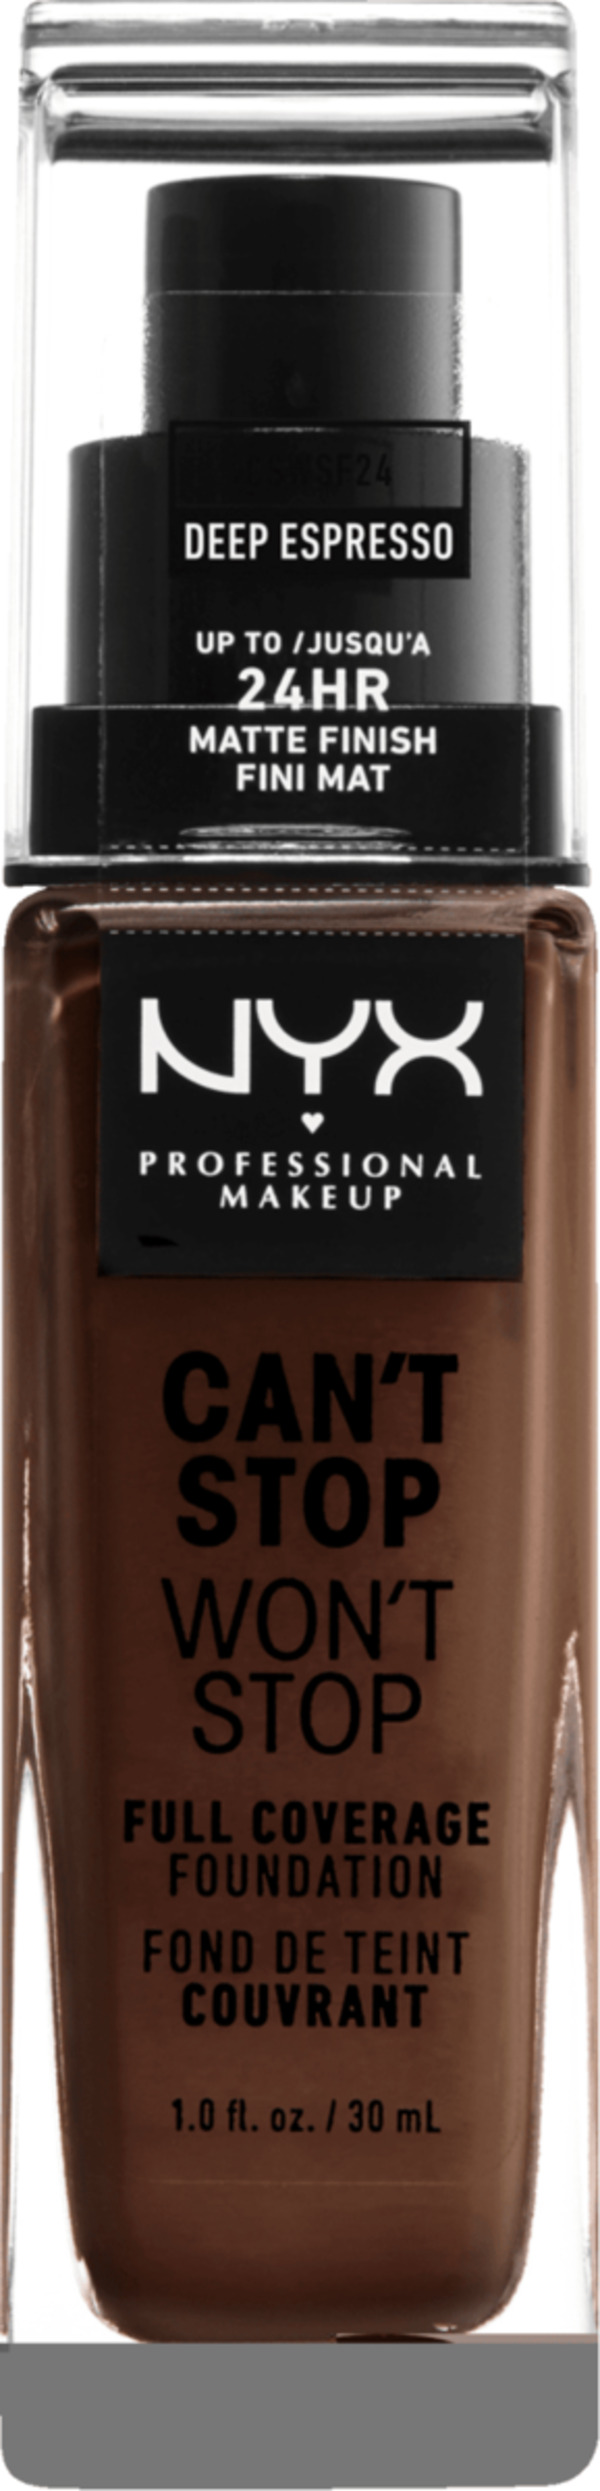 NYX PROFESSIONAL MAKEUP Make-up Can't Stop Won't Stop 24-Hour Foundation deep espresso 24